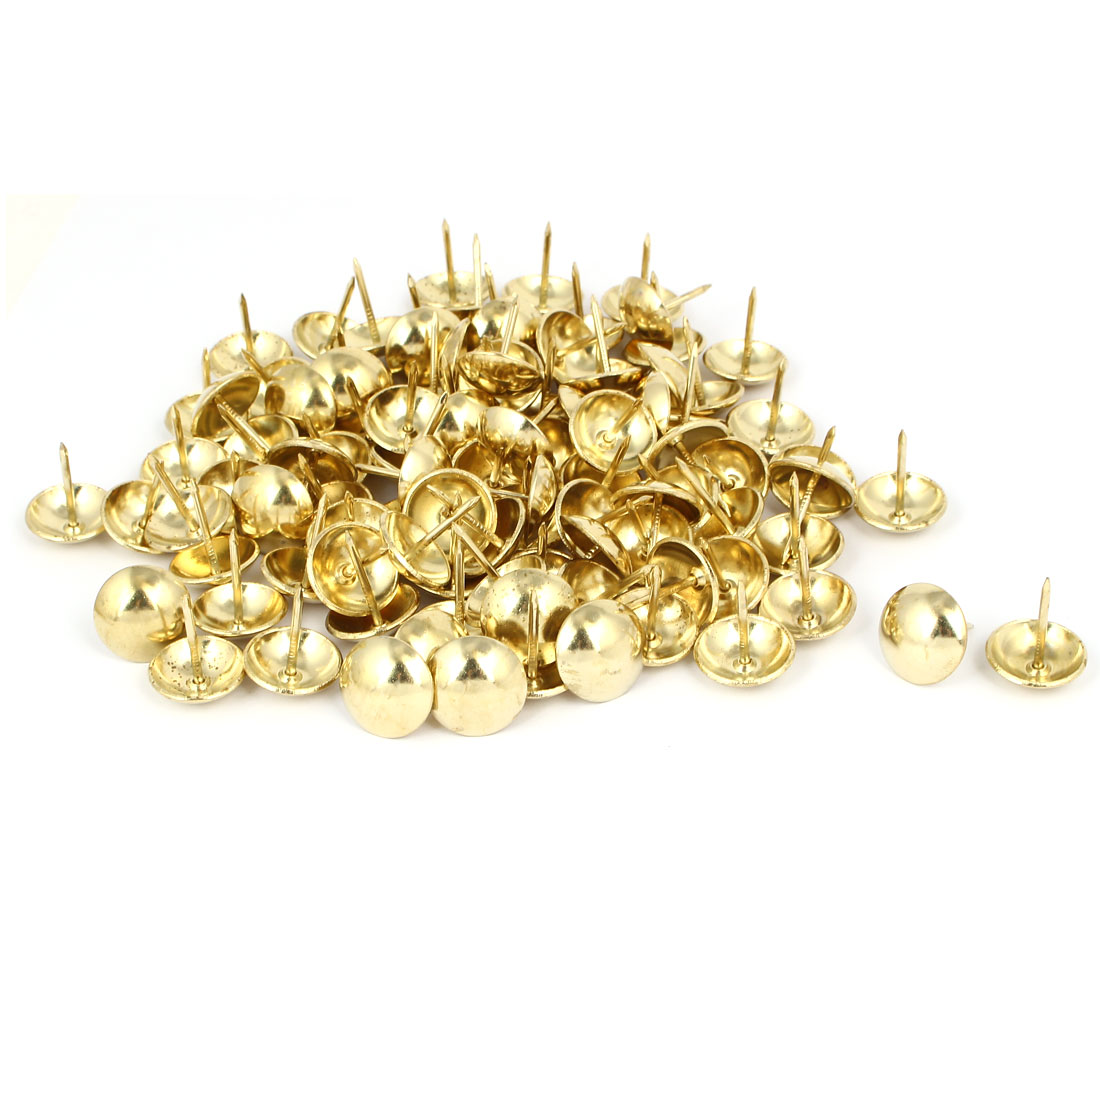 Metal Round Head Upholstery Tack Nail Gold Tone 19mm Dia 120pcs for Home Decor